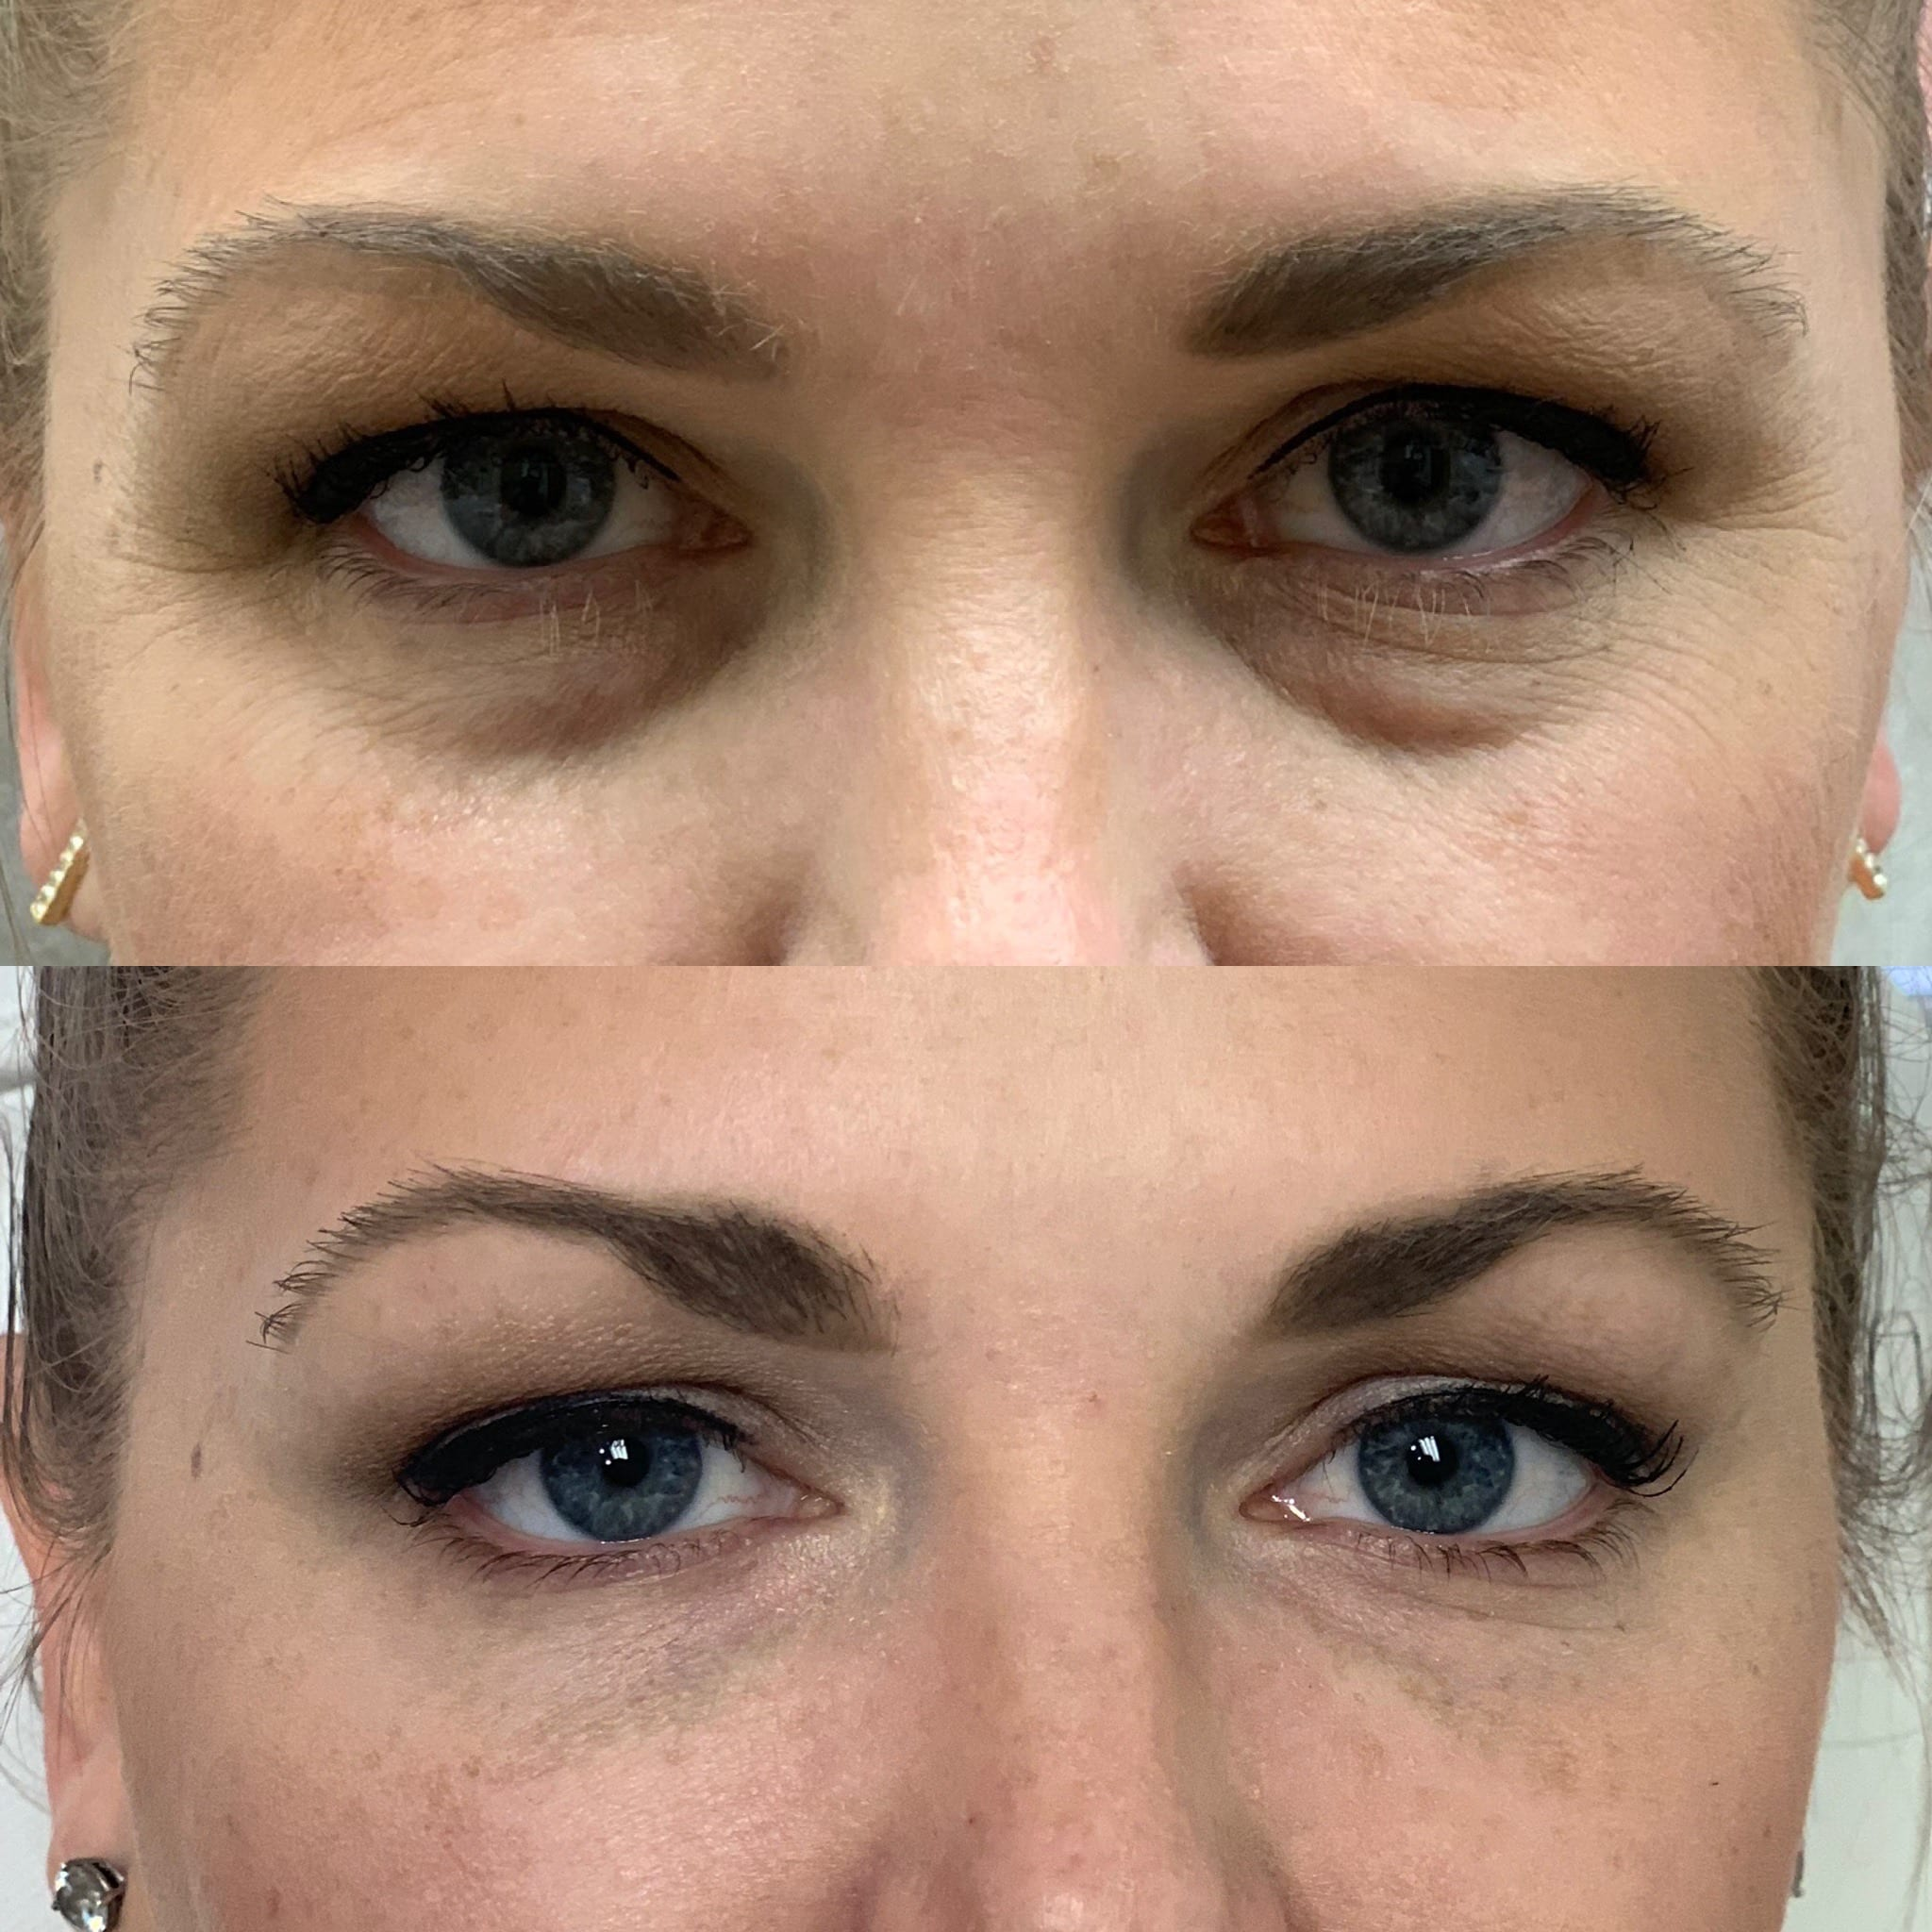 32 y/o Caucasian F 2 weeks after 1 syringe of volbella to her under eye area.